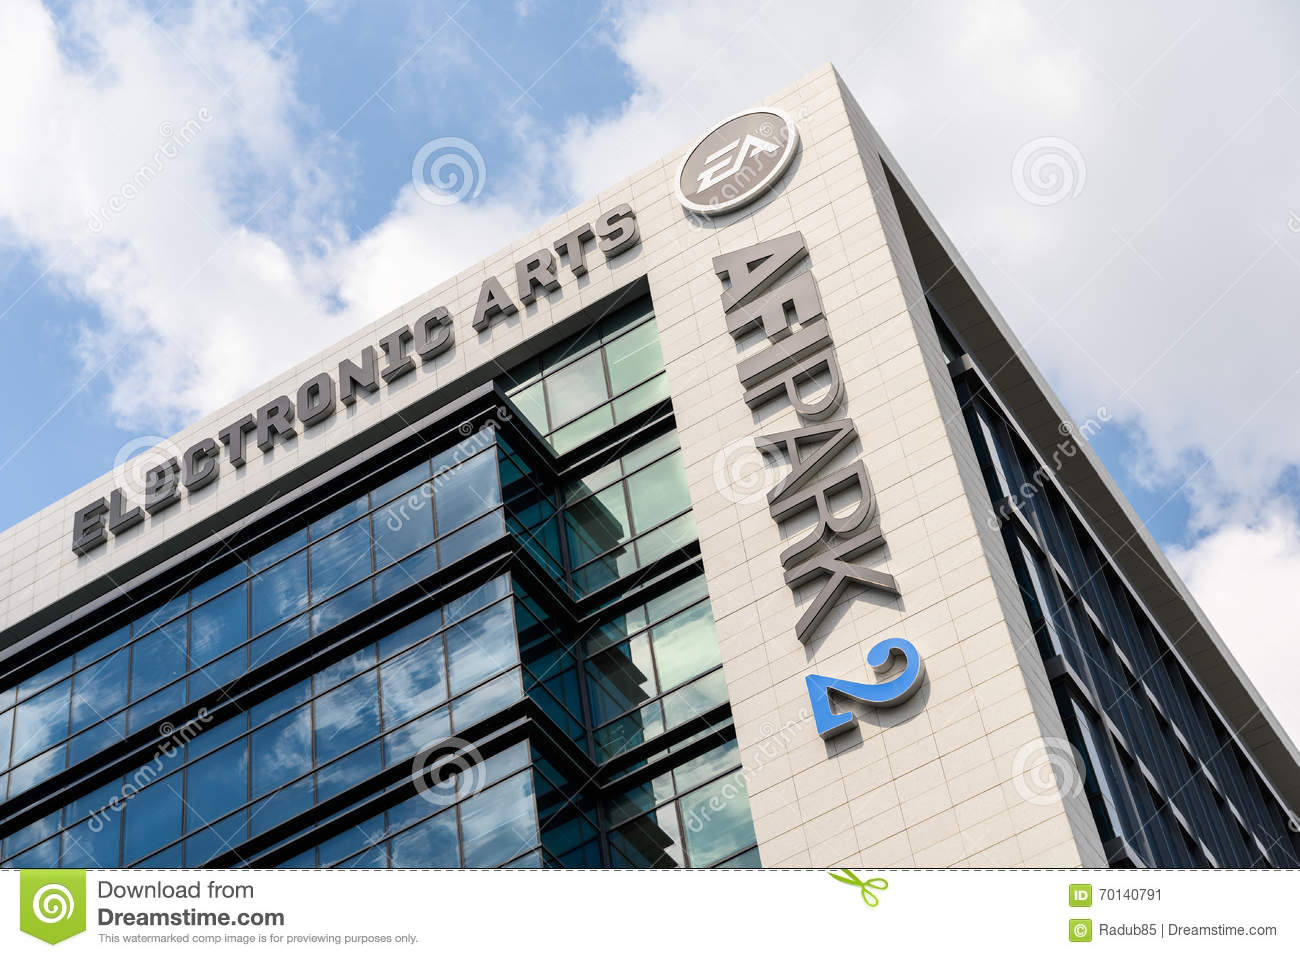 Electronic Arts Games Building Editorial Photo - Image of marketer, technology: 70140791